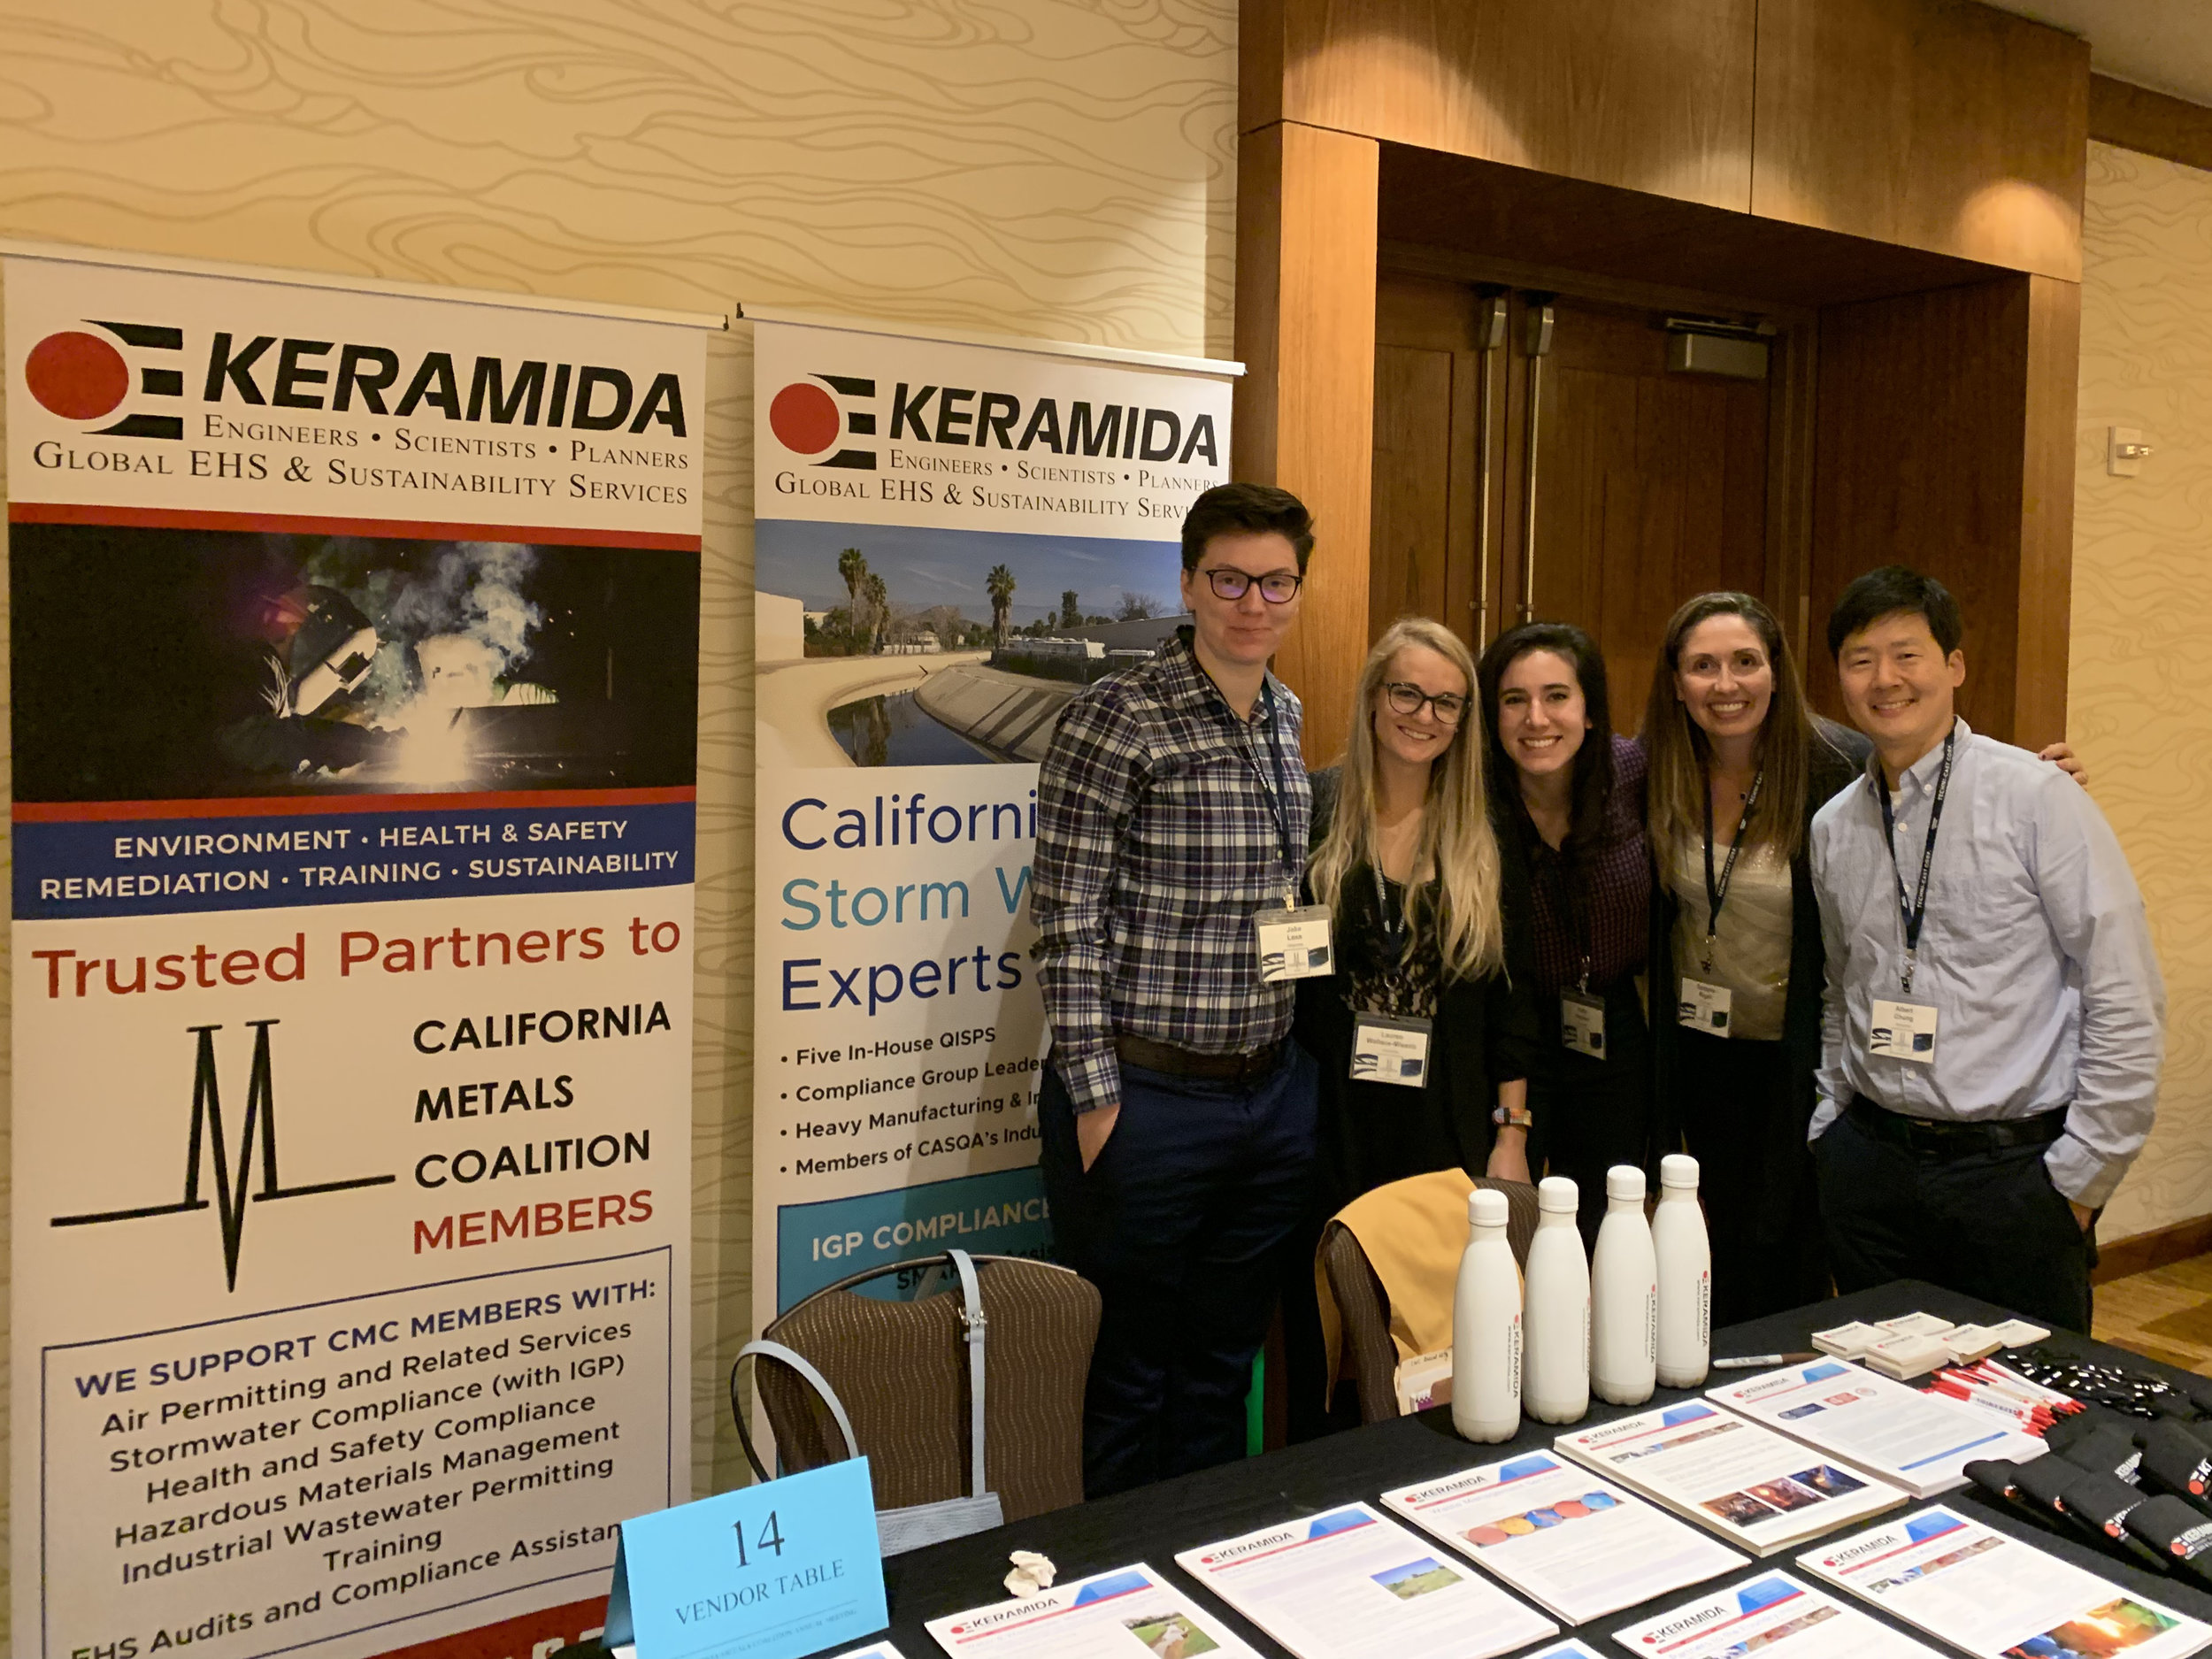 KERAMIDA at the CMC Annual meeting in Anaheim - May 9, 2019